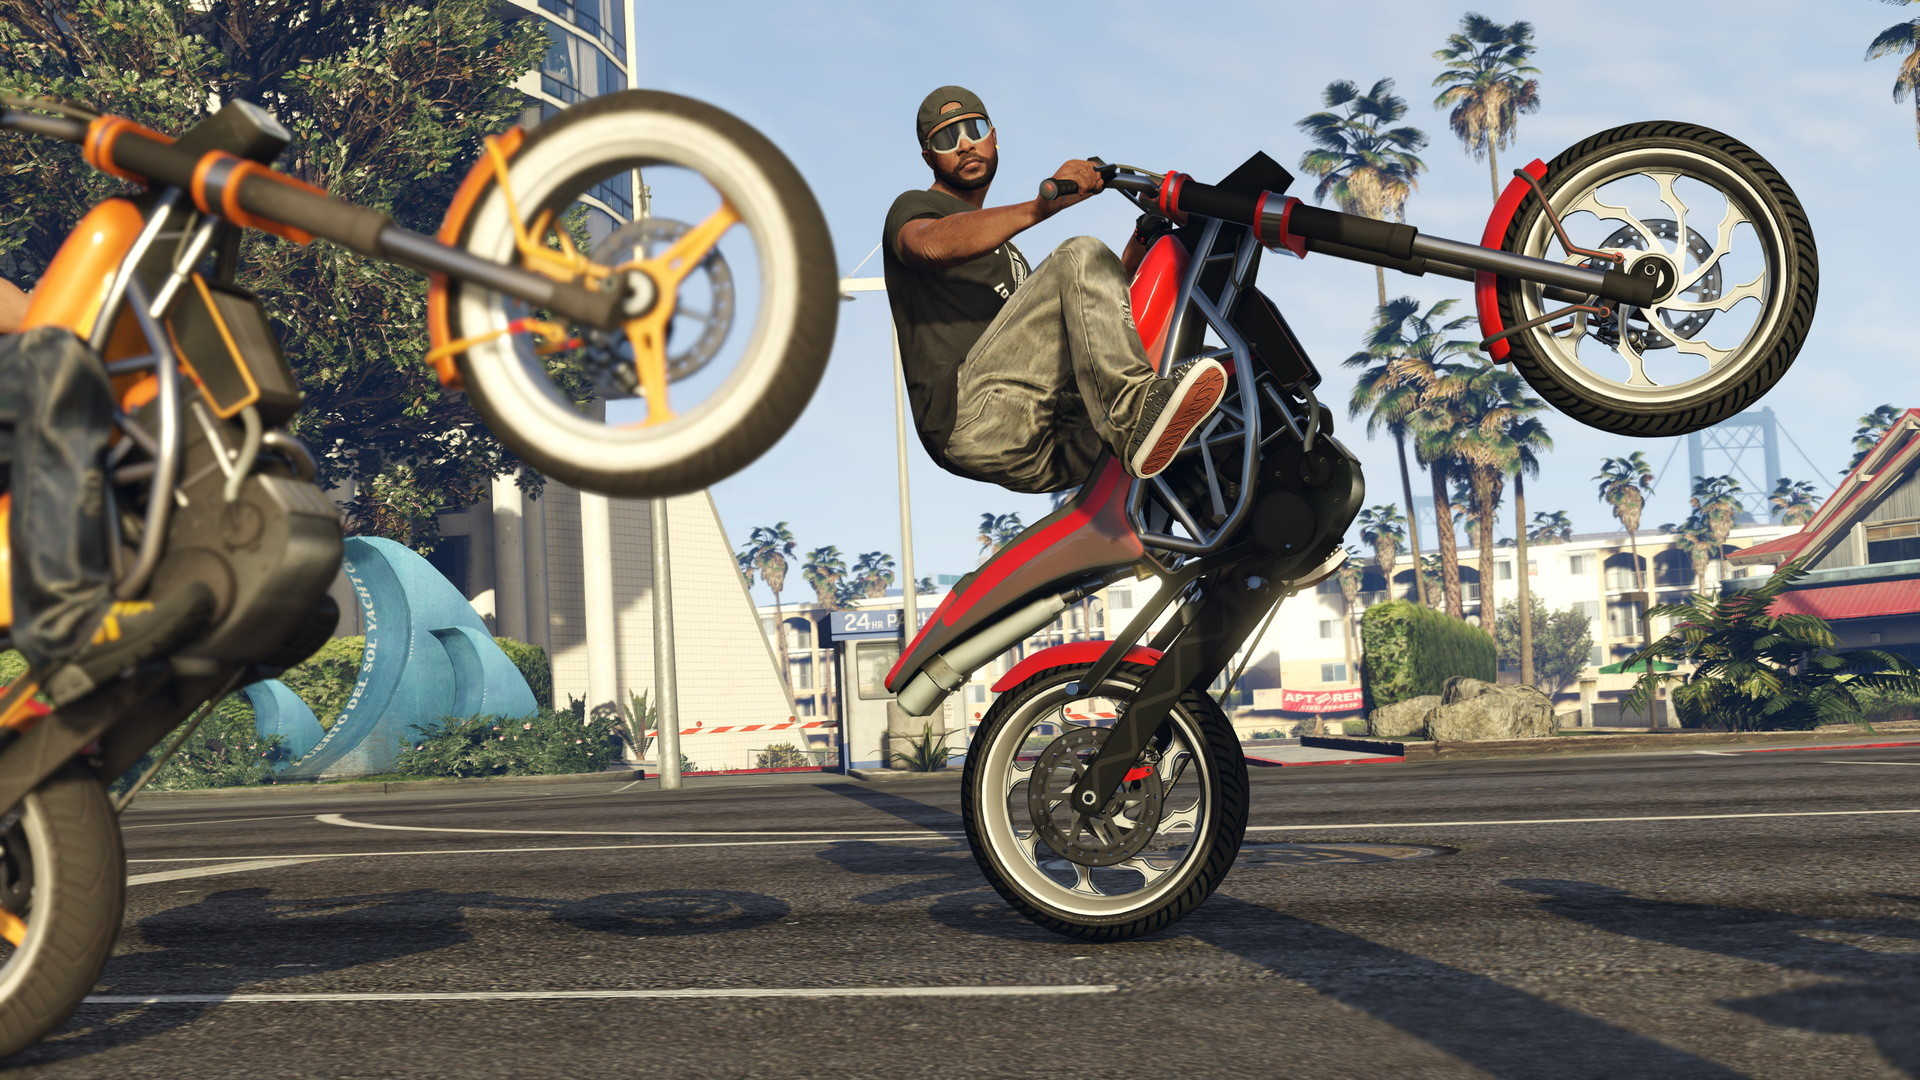 Top Collection Of GTA 5 HD Wallpapers Gta Wallpaper Hd Pack V